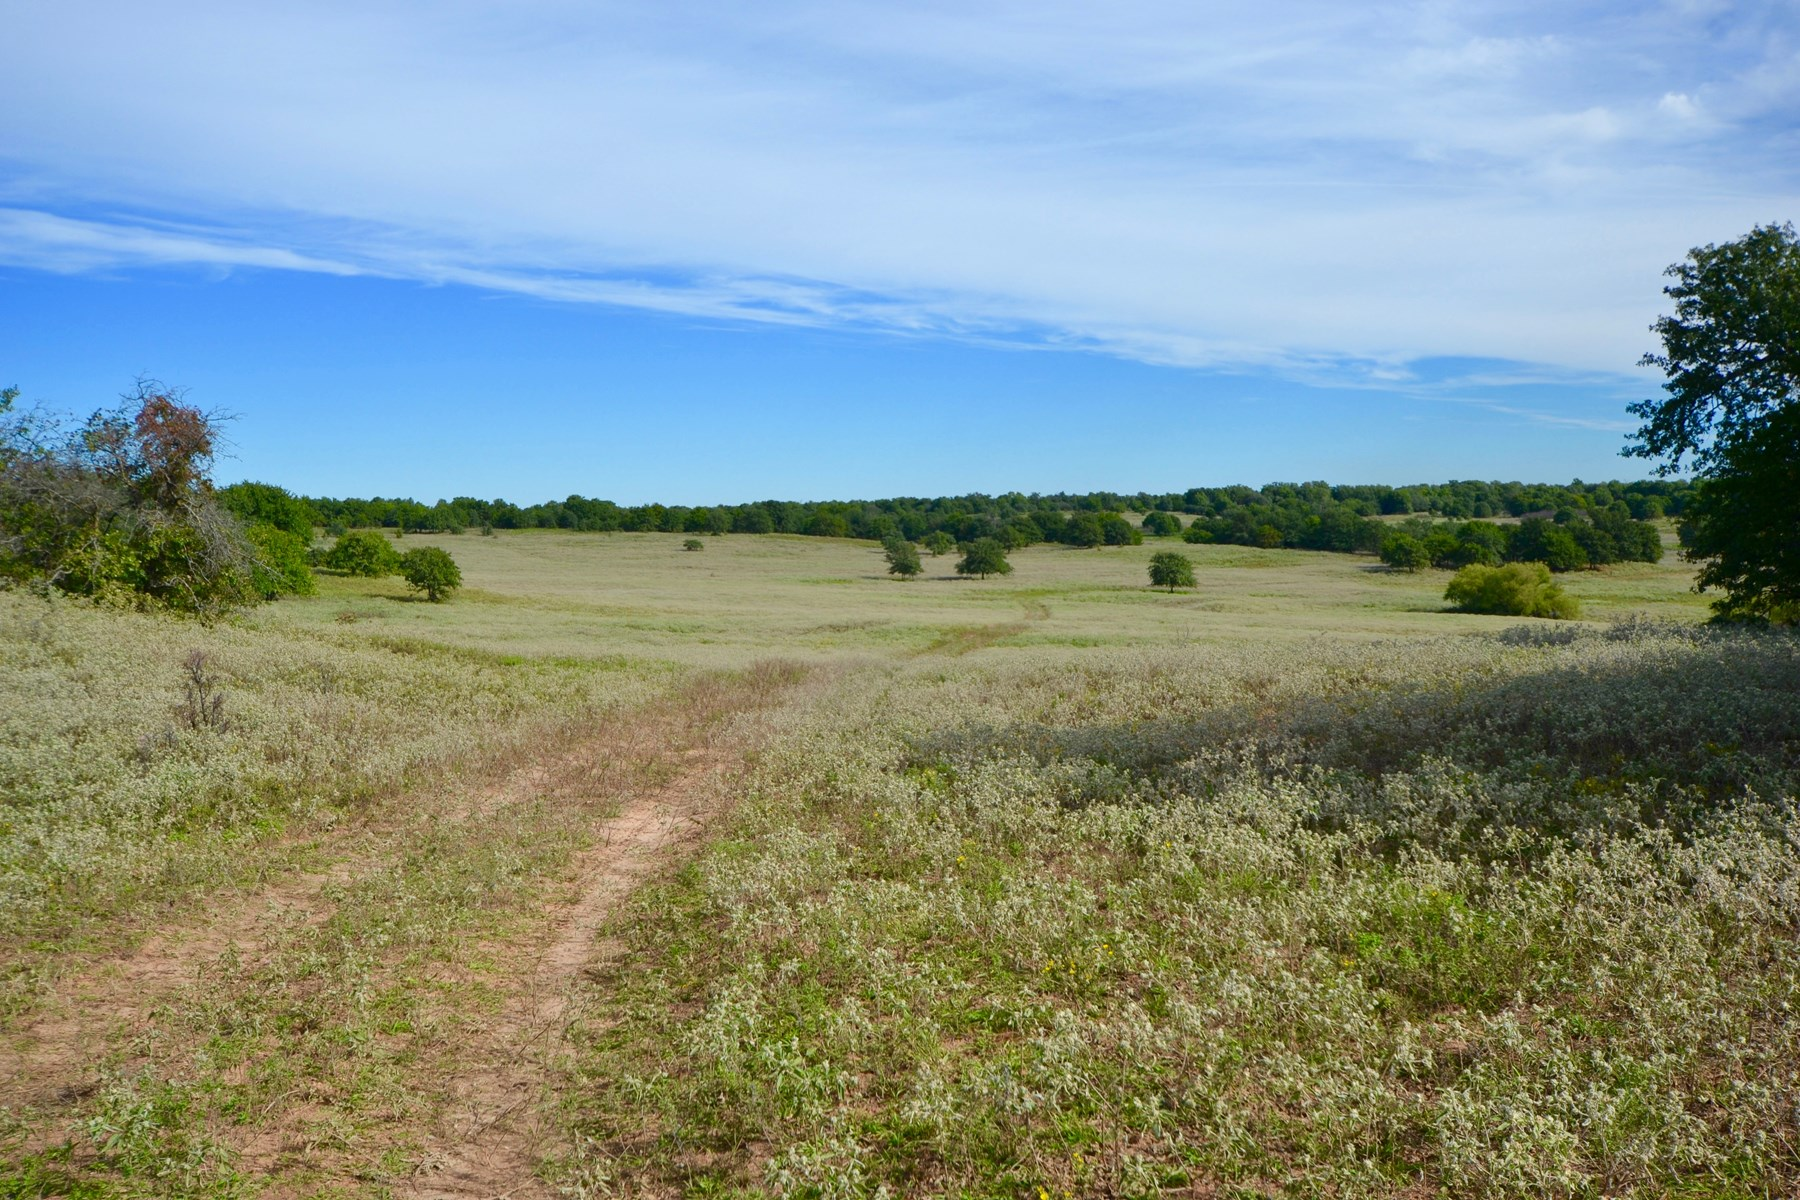 LAND PROPERTY FOR SALE CEMENT CADDO COUNTY OKLAHOMA AUCTION